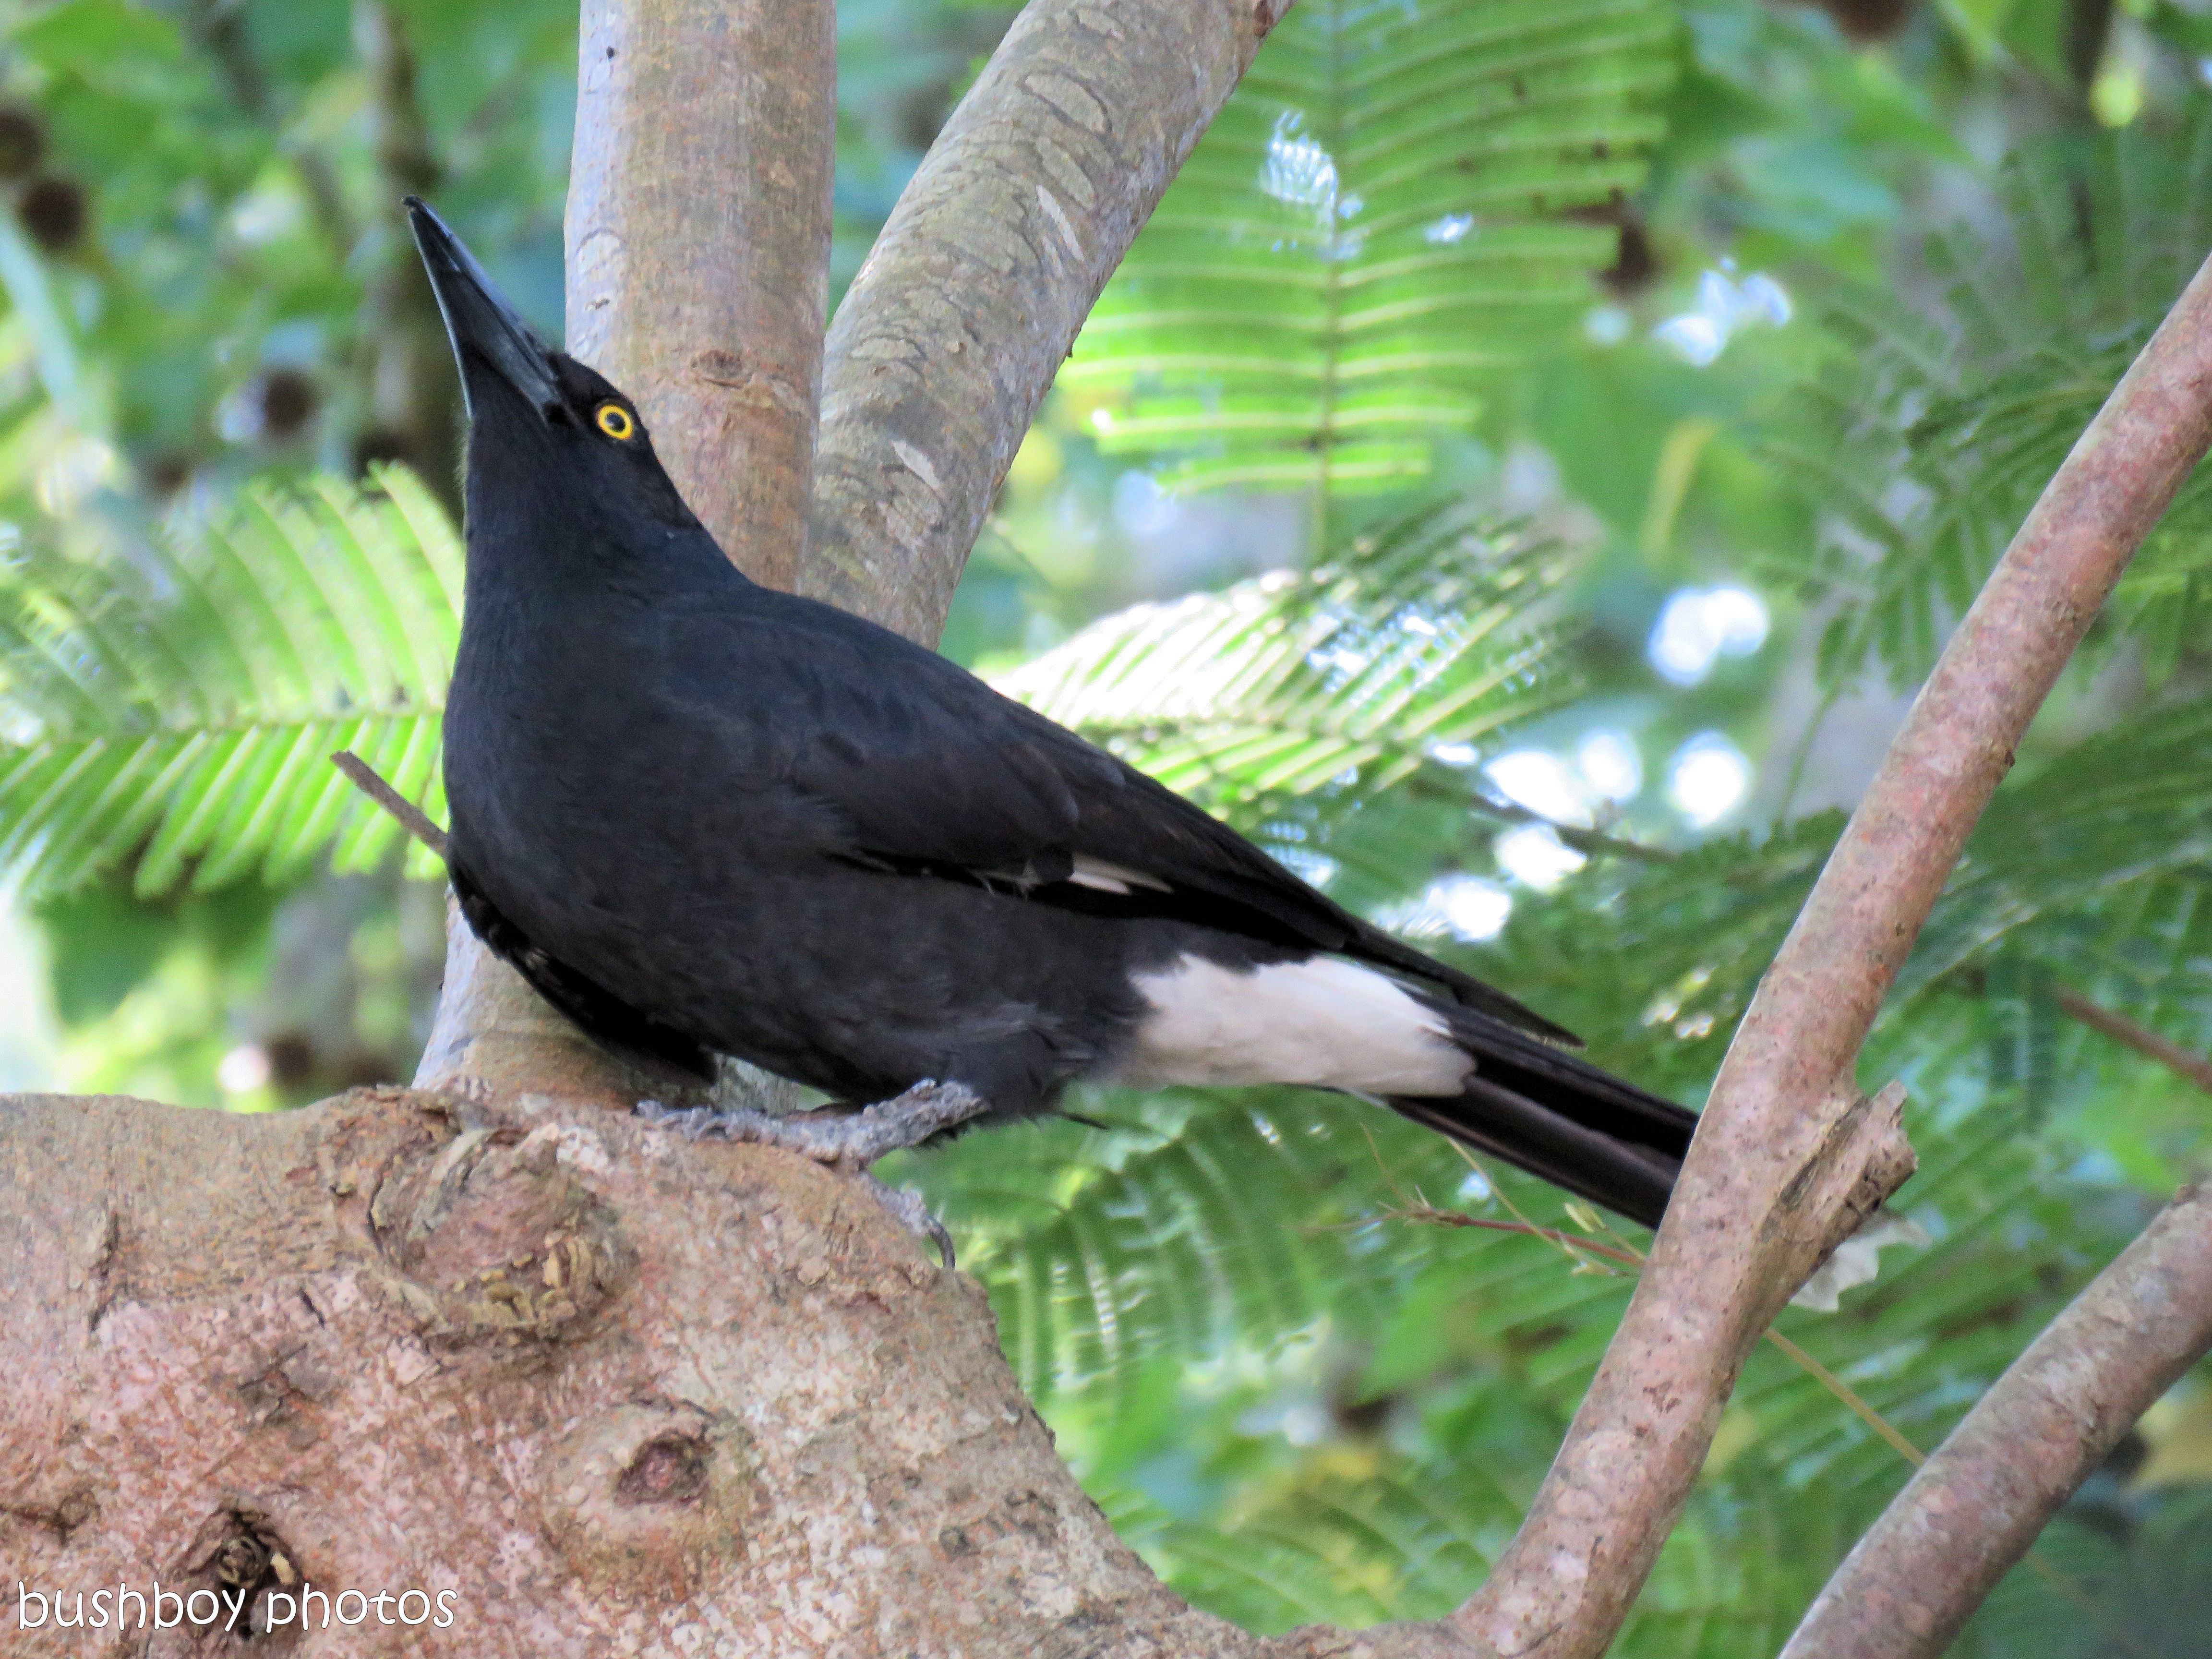 currawong_named_binna burra_may 2017